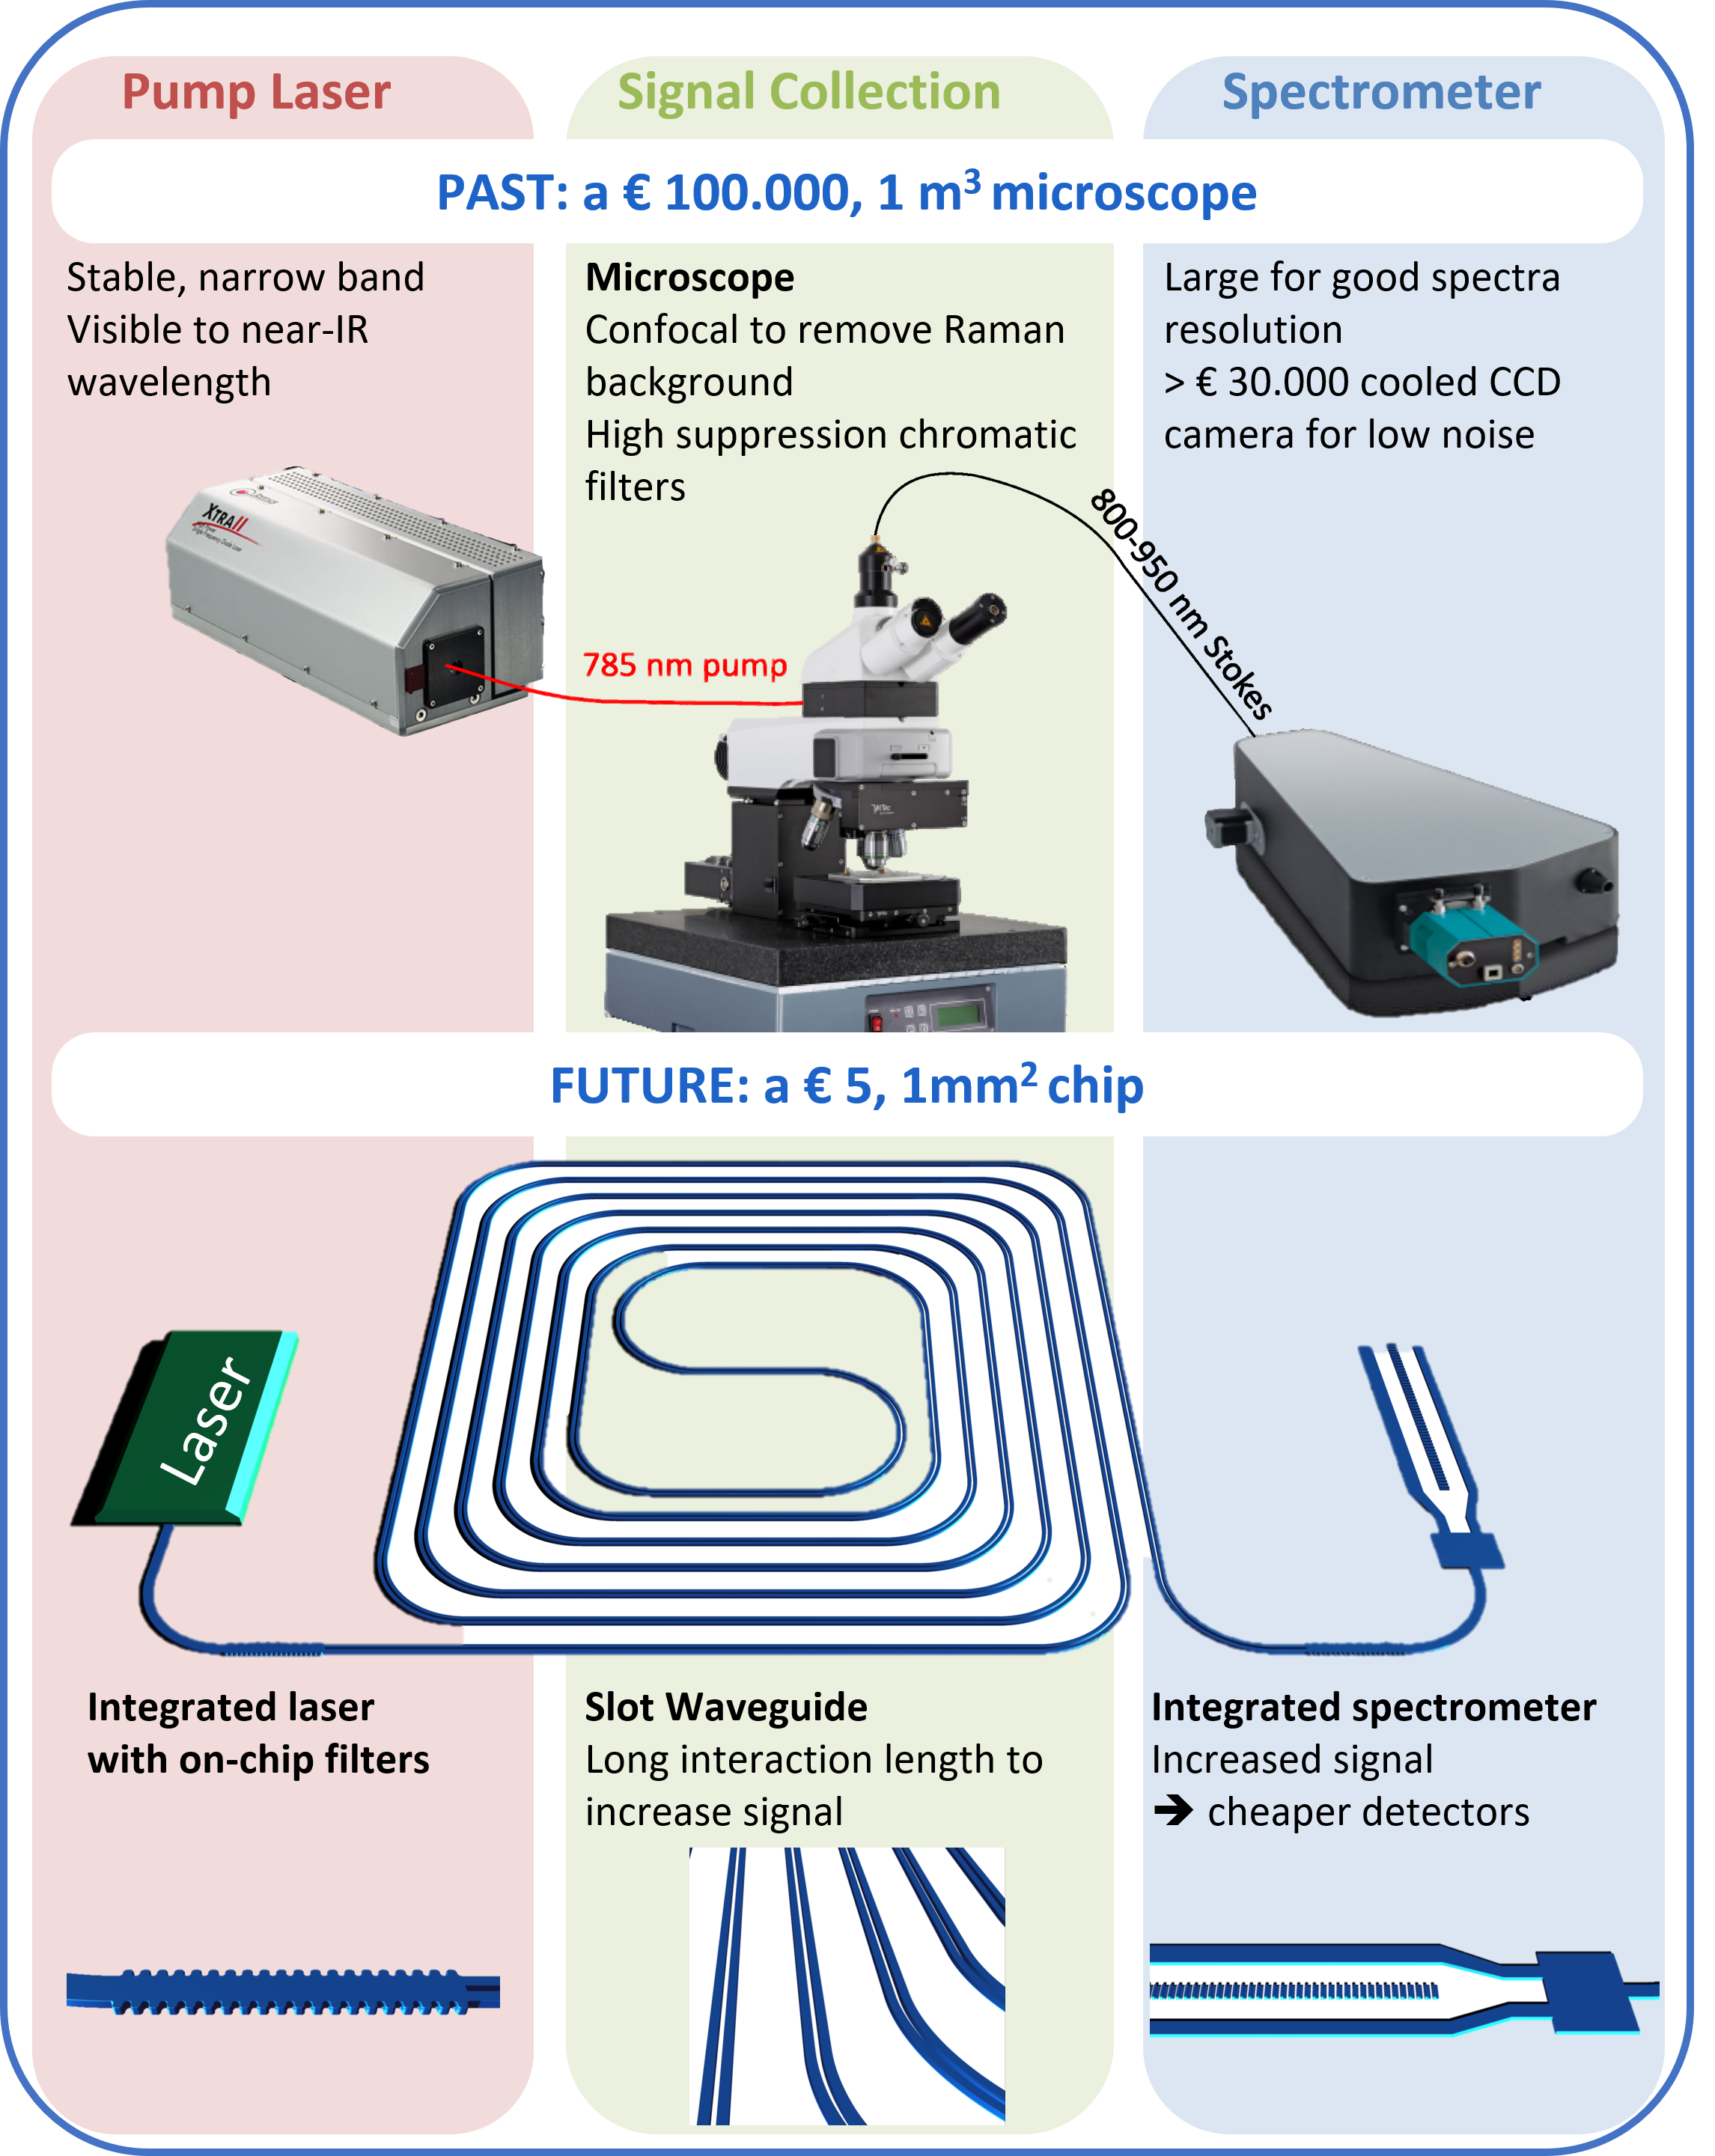 Master Thesis Topics Transimpedance Amp With Opa355 High Speed Amplifiers Forum Nanophotonics Waveguide The Integration Of These Sensors Other Building Blocks As Depicted In Fig 1 Ie On Chip Filter Spectrometers And